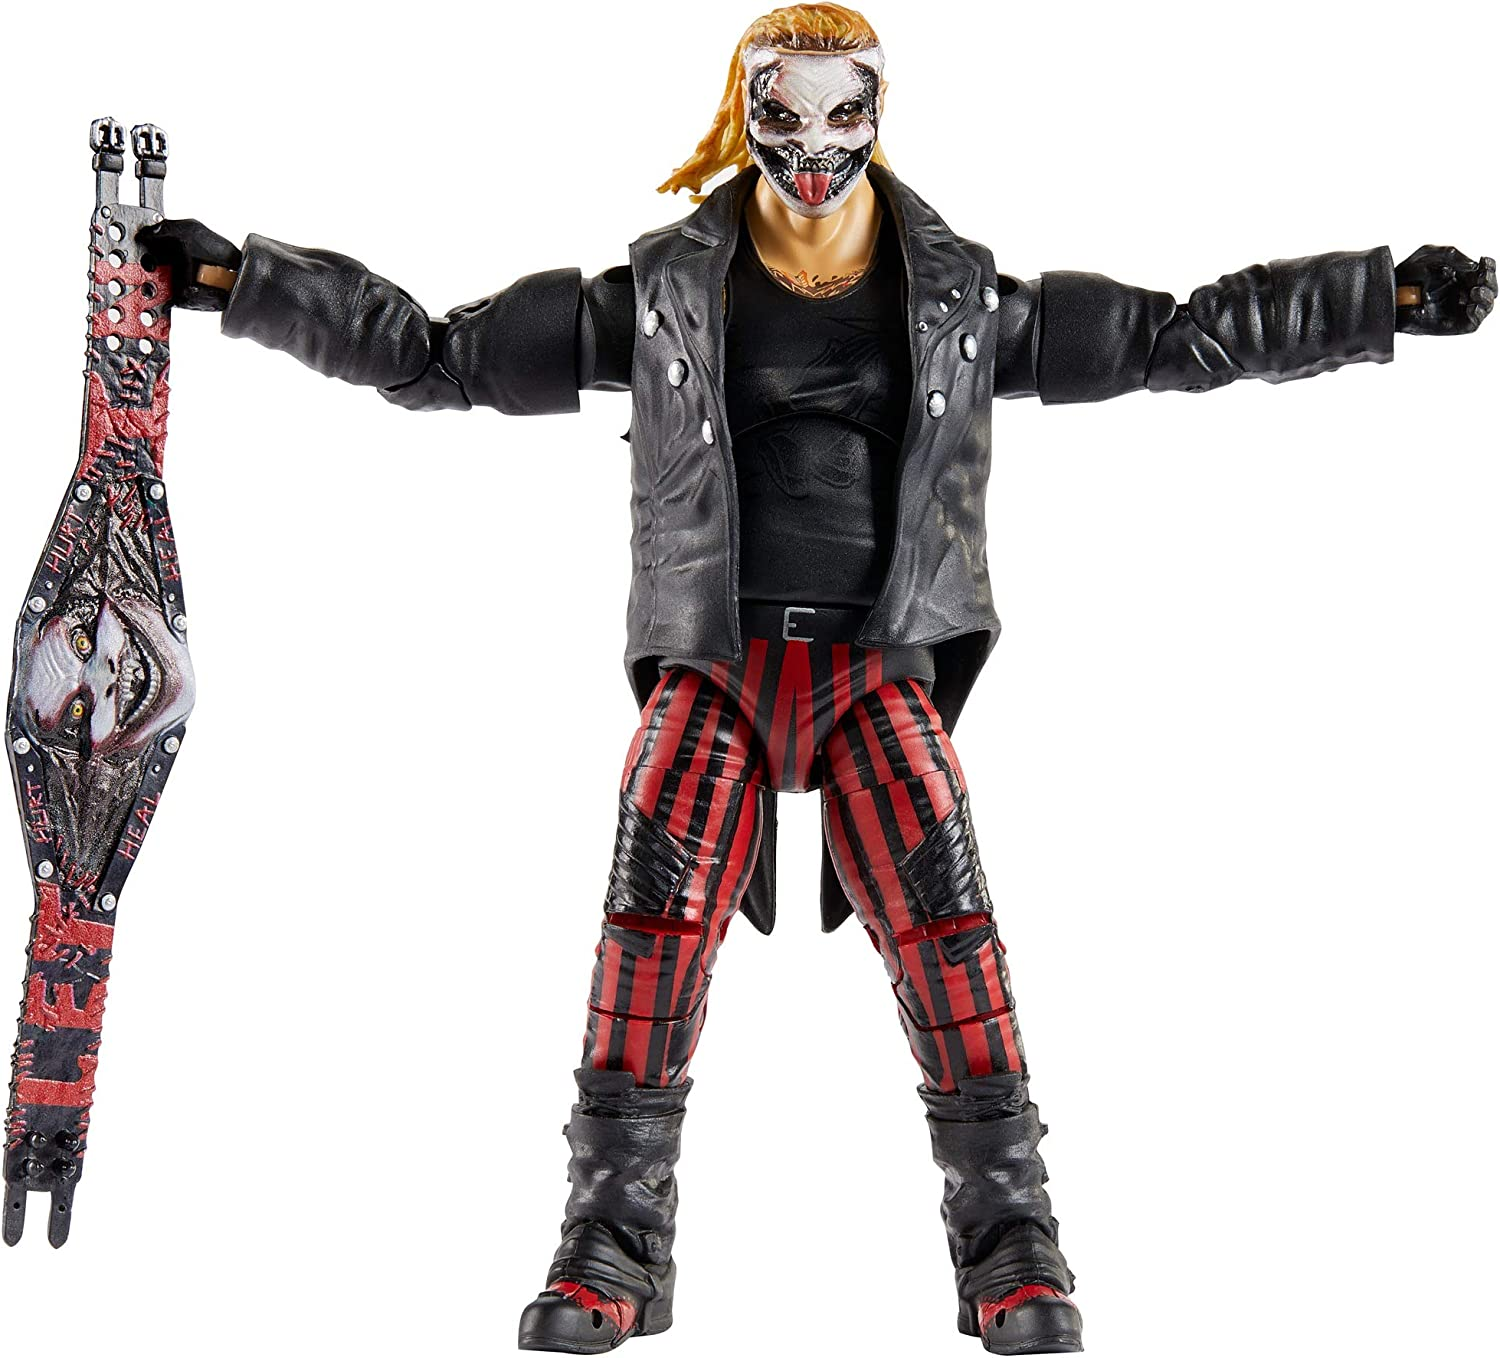 WWE Ultimate Edition Wave 7 The Fiend Bray Wyatt Action Figure 6 in with...